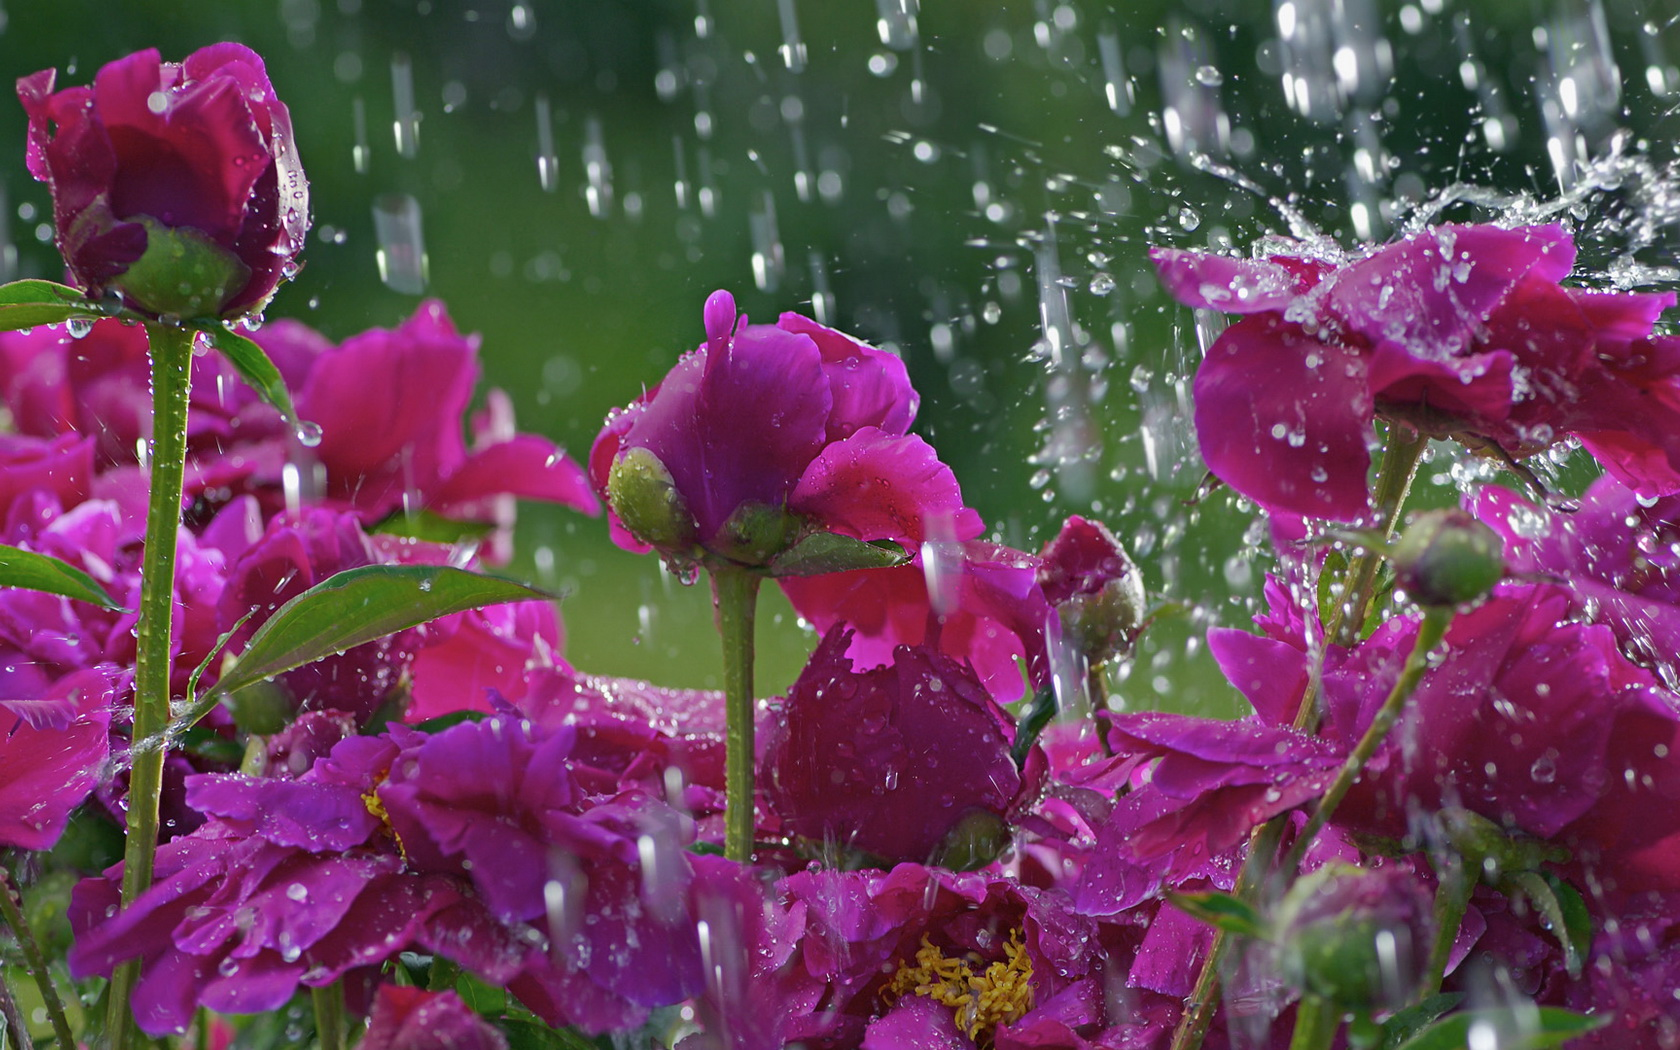 Flowers Water Drops Wallpaper  1680x1050 135619